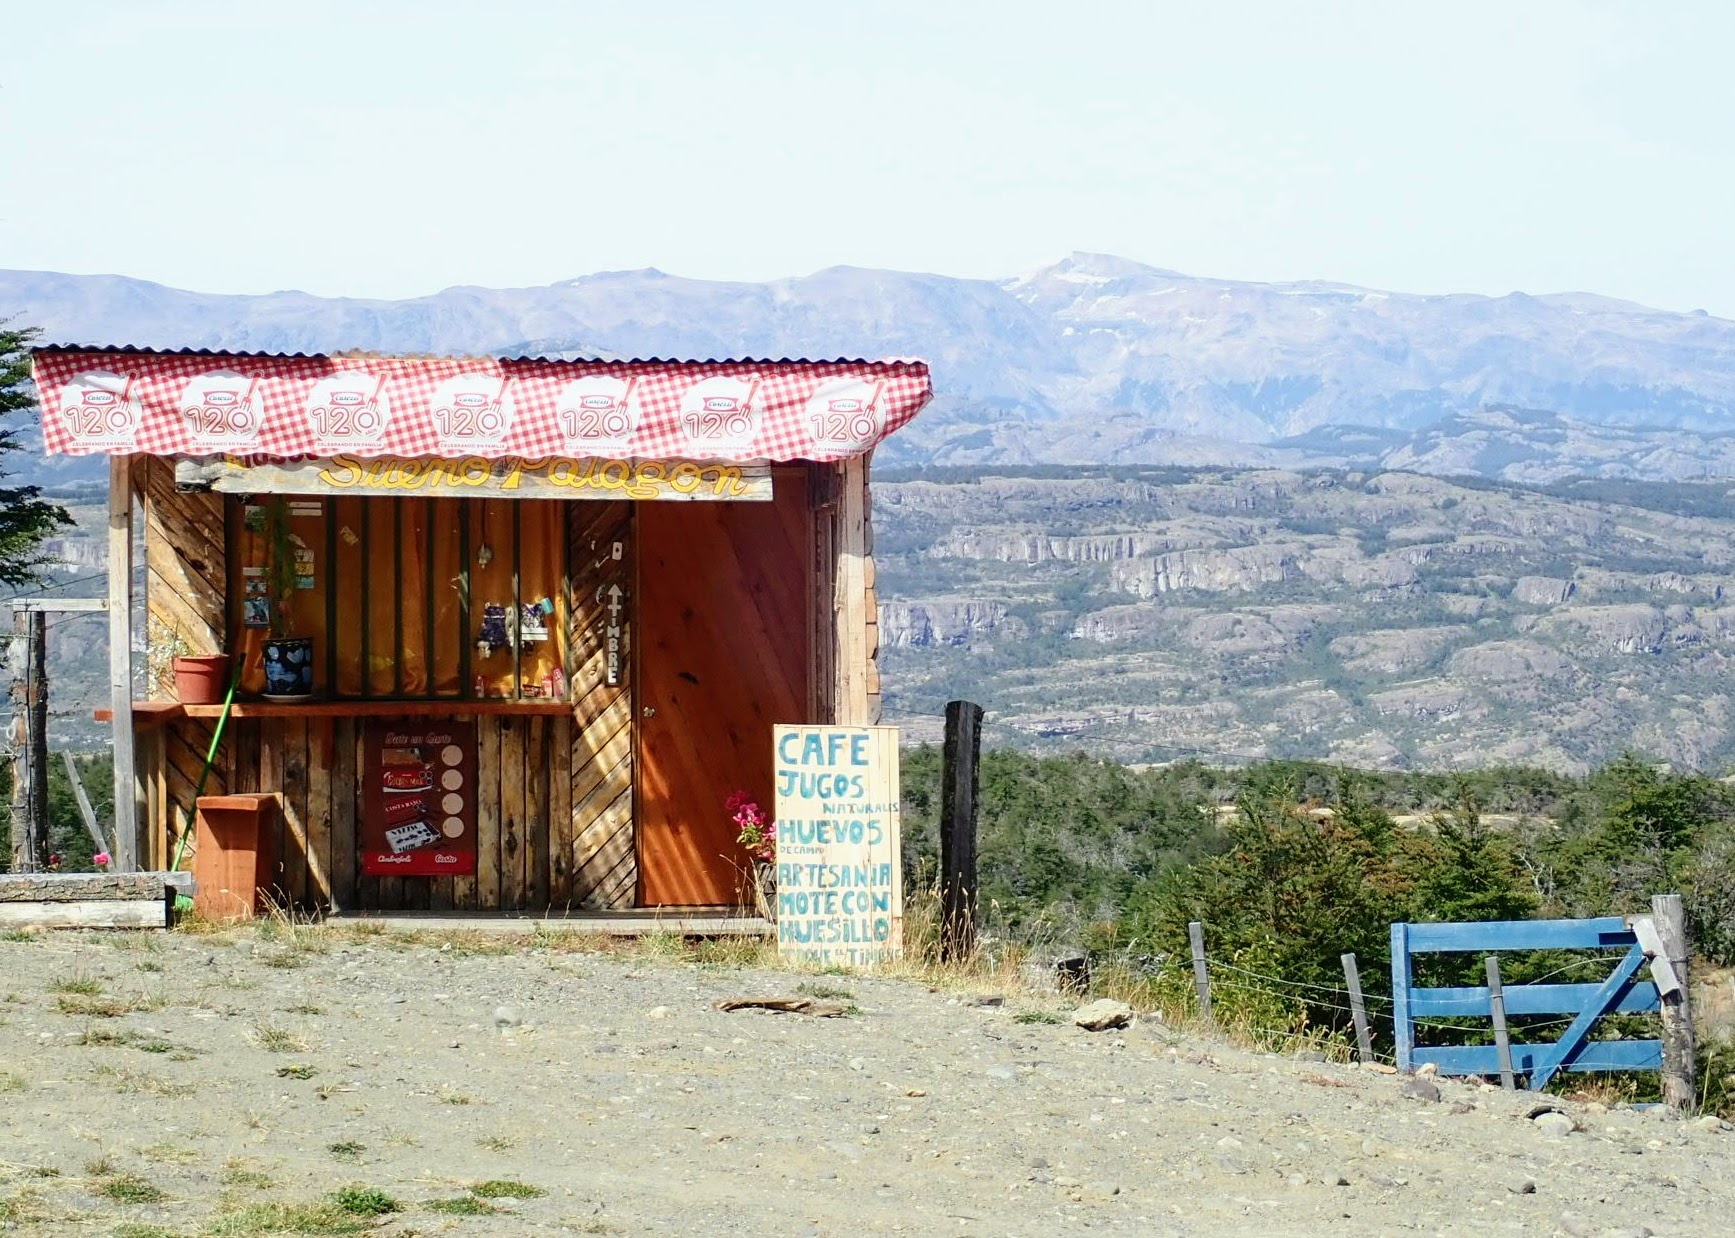 Roadside cafe in Chile